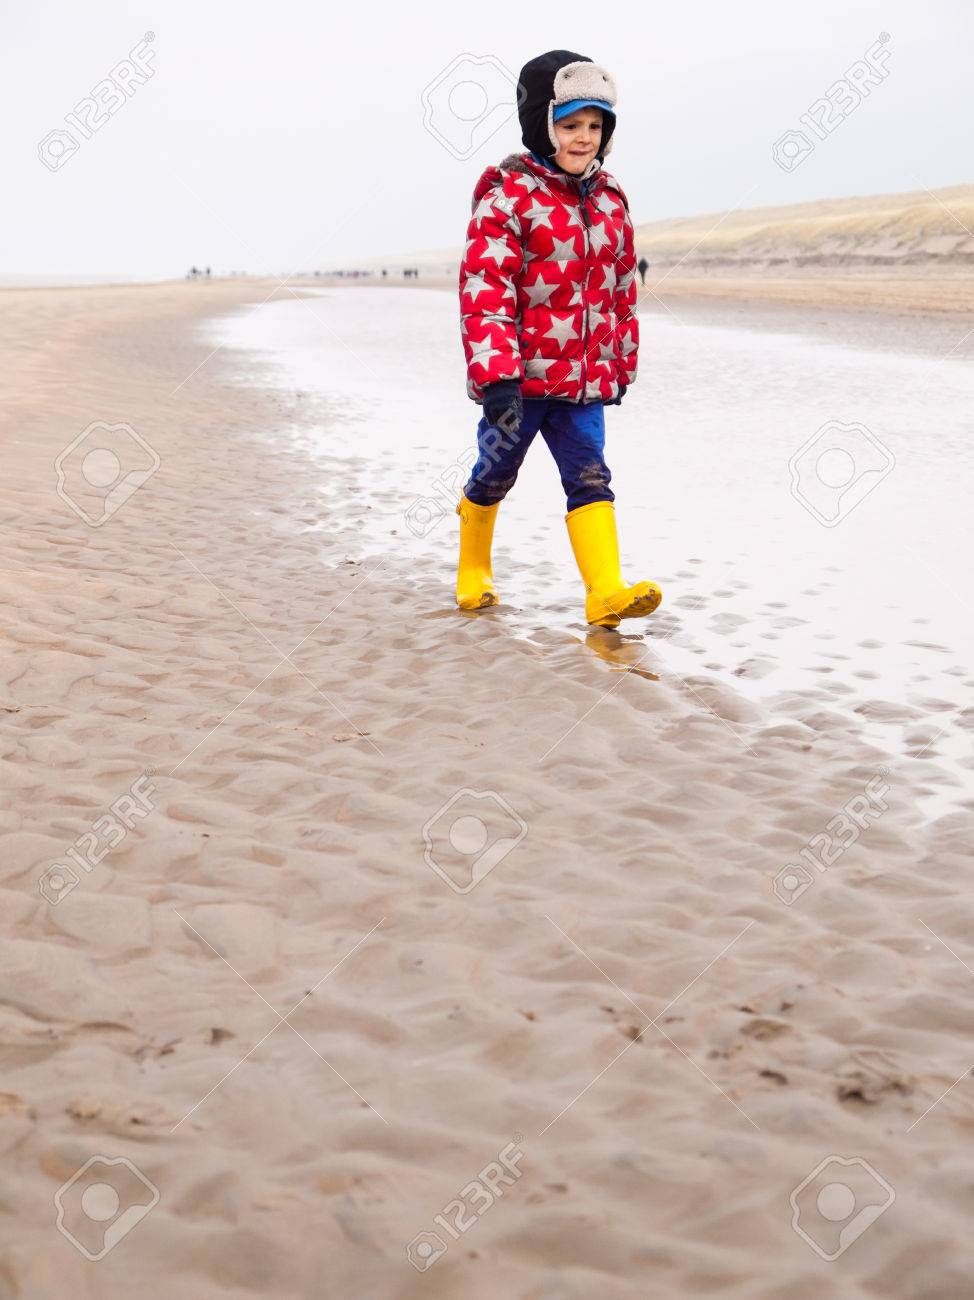 e5b8786c24 small boy in winter clothing and rubber boots walking on a winter beach  Stock Photo -